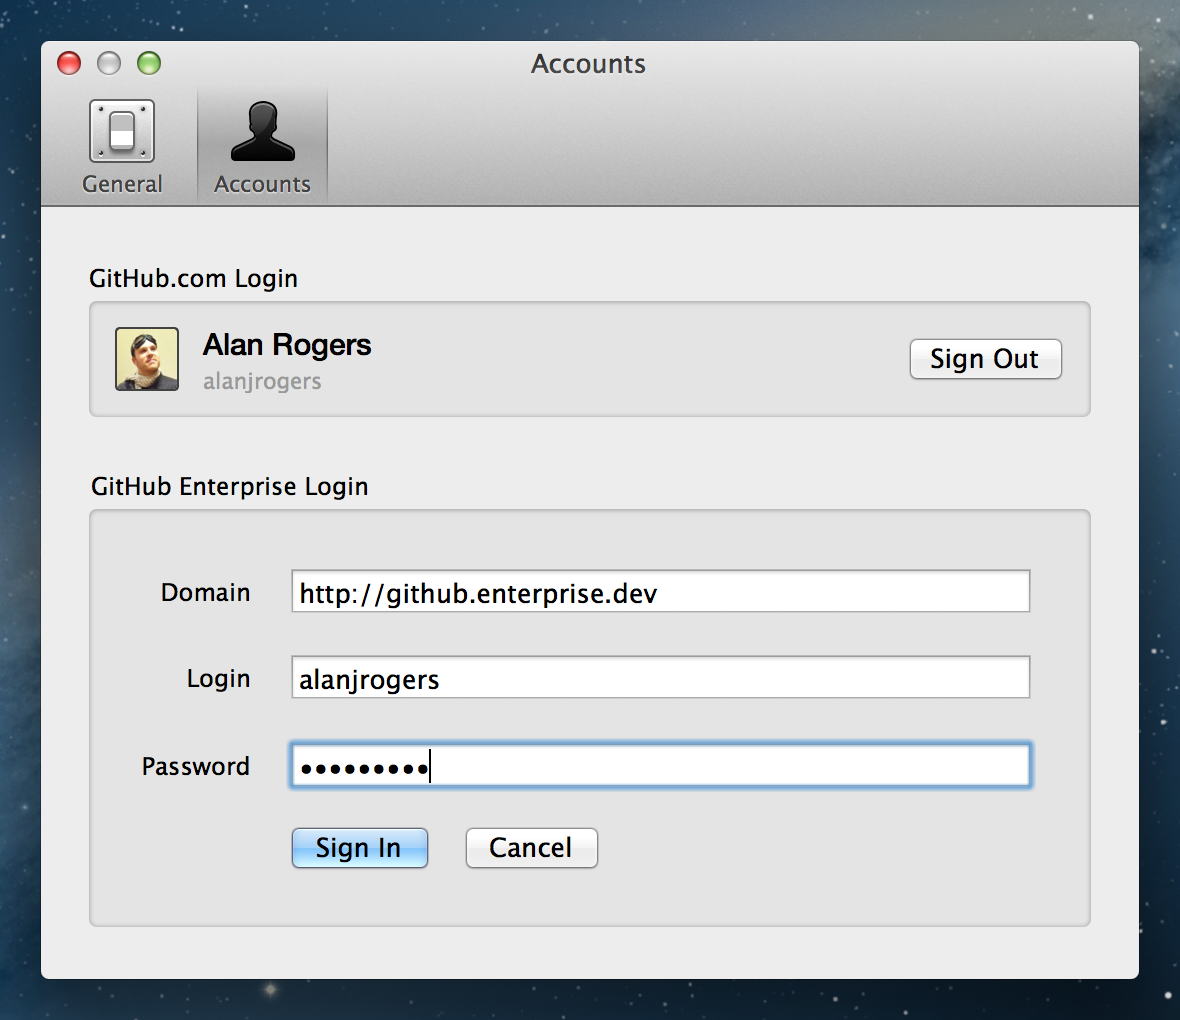 Enterprise login form